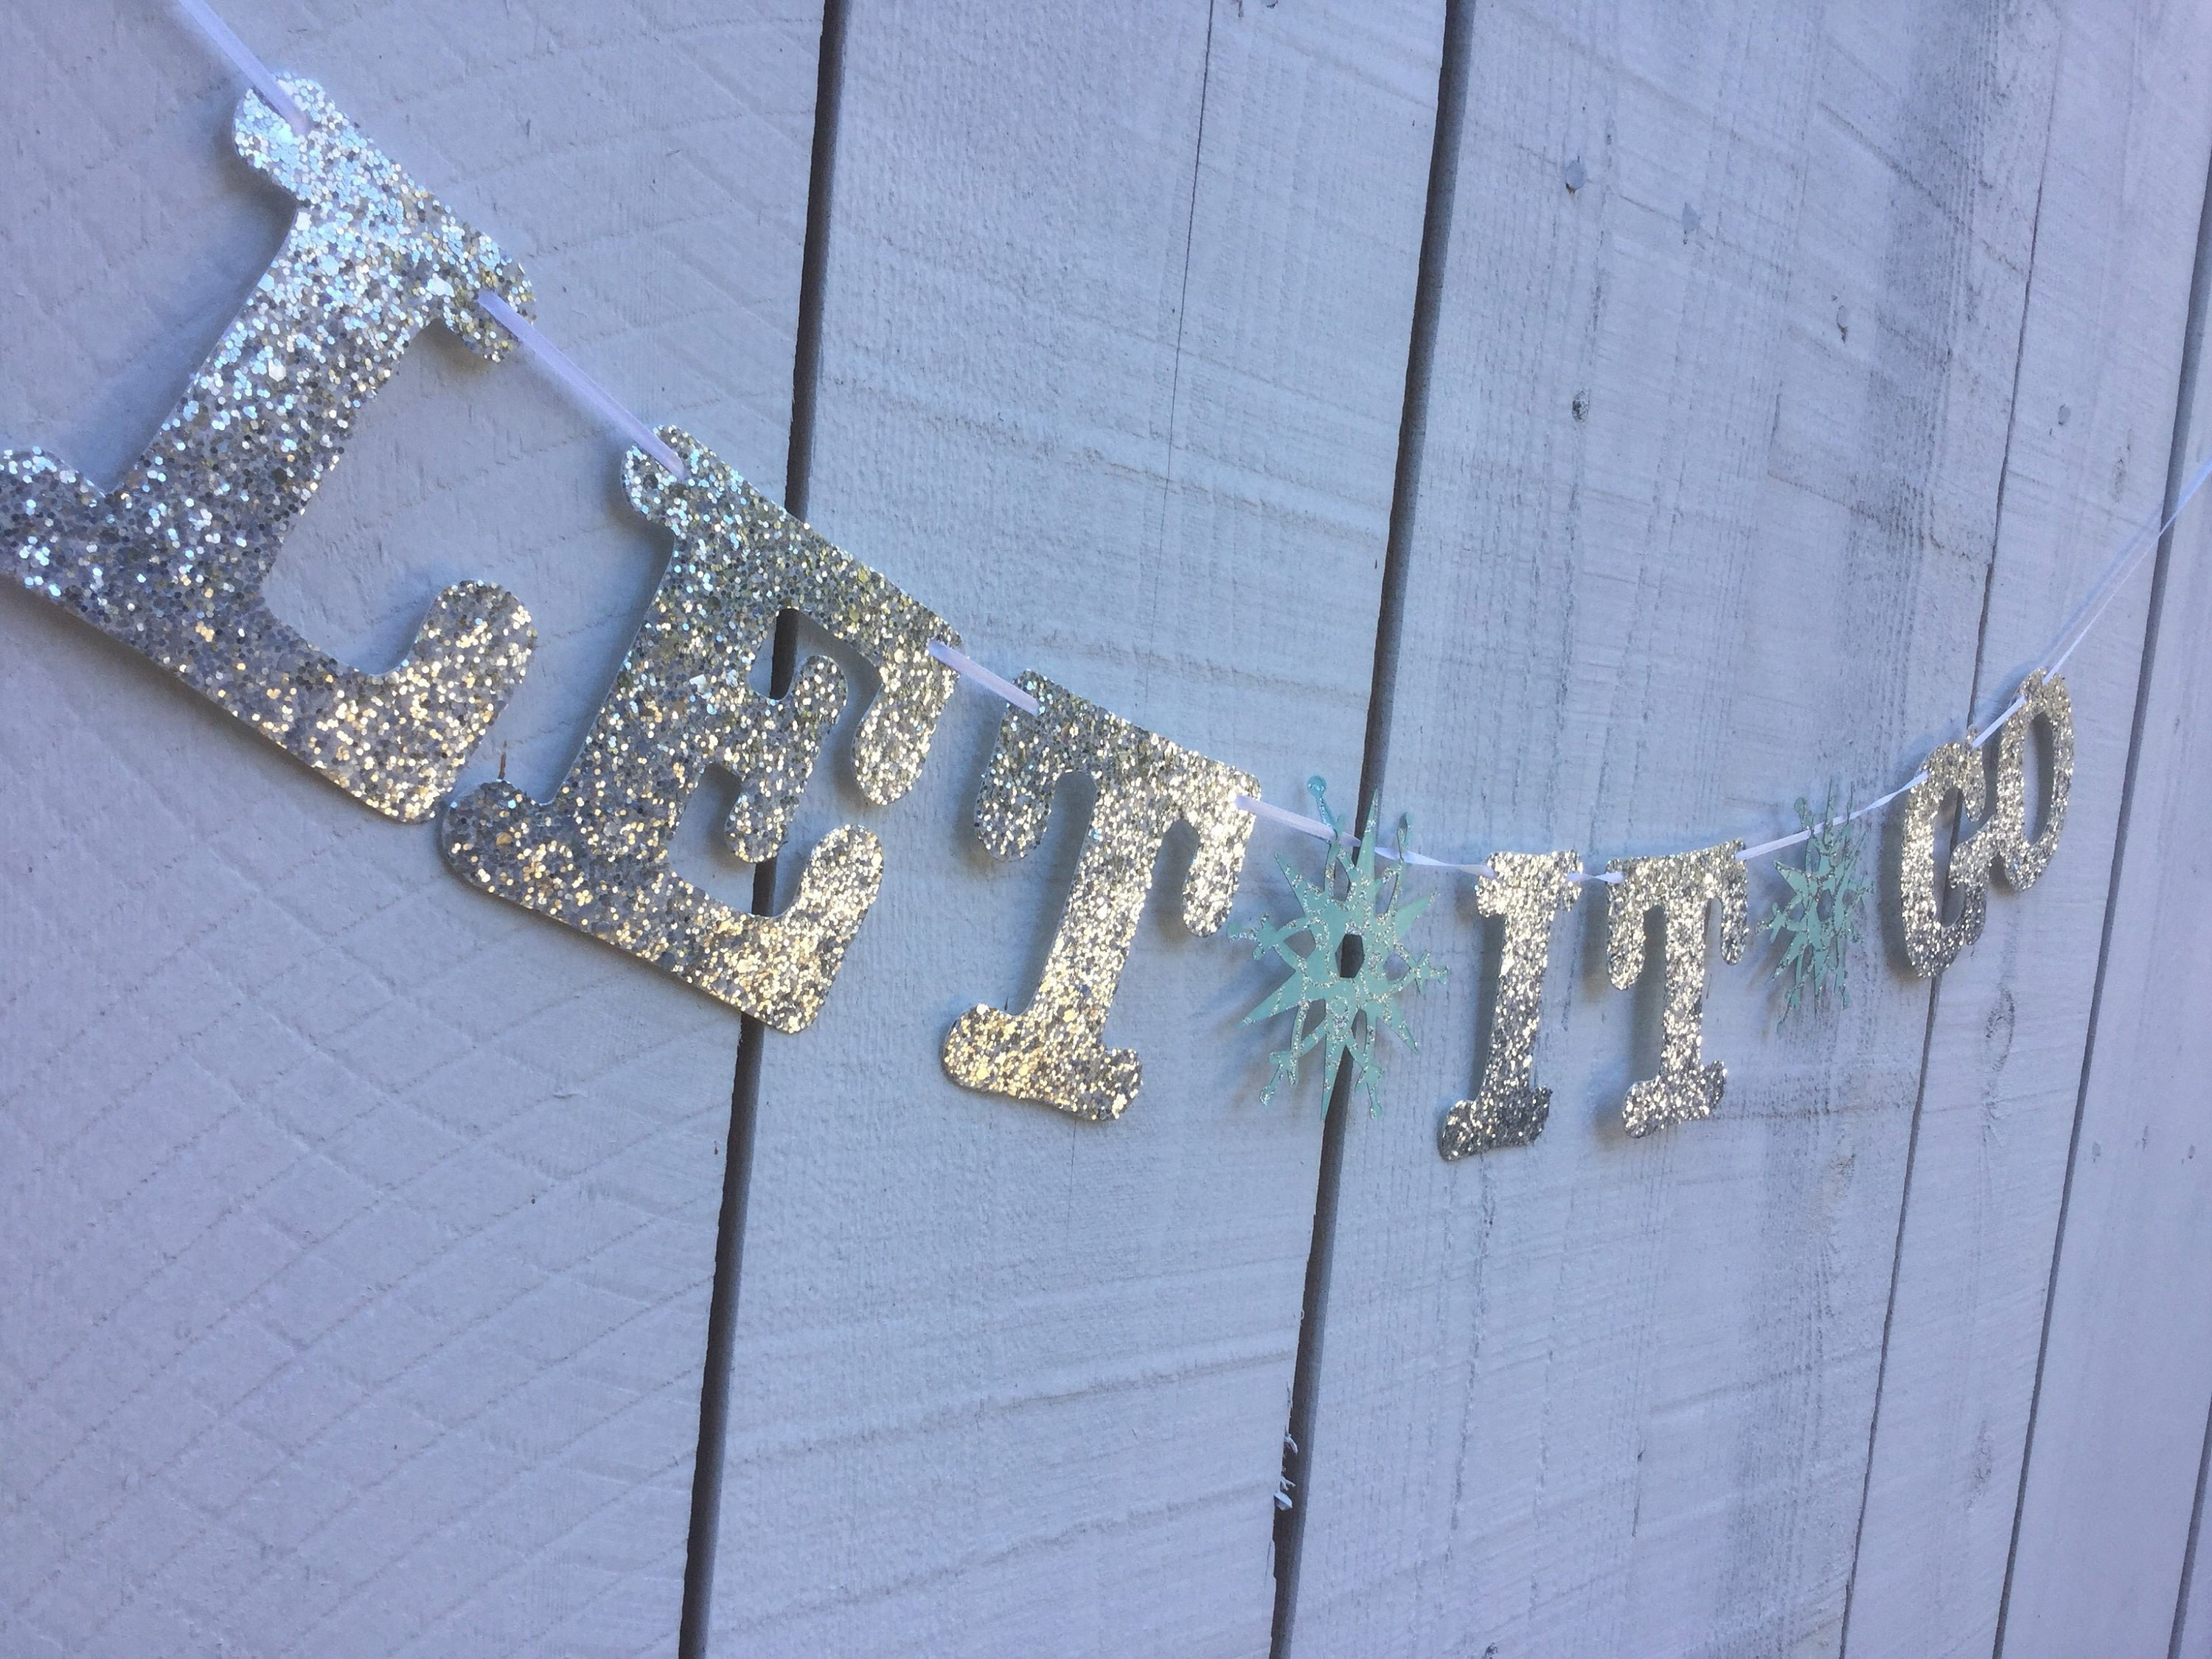 Let it Go banner for a Frozen-theme party